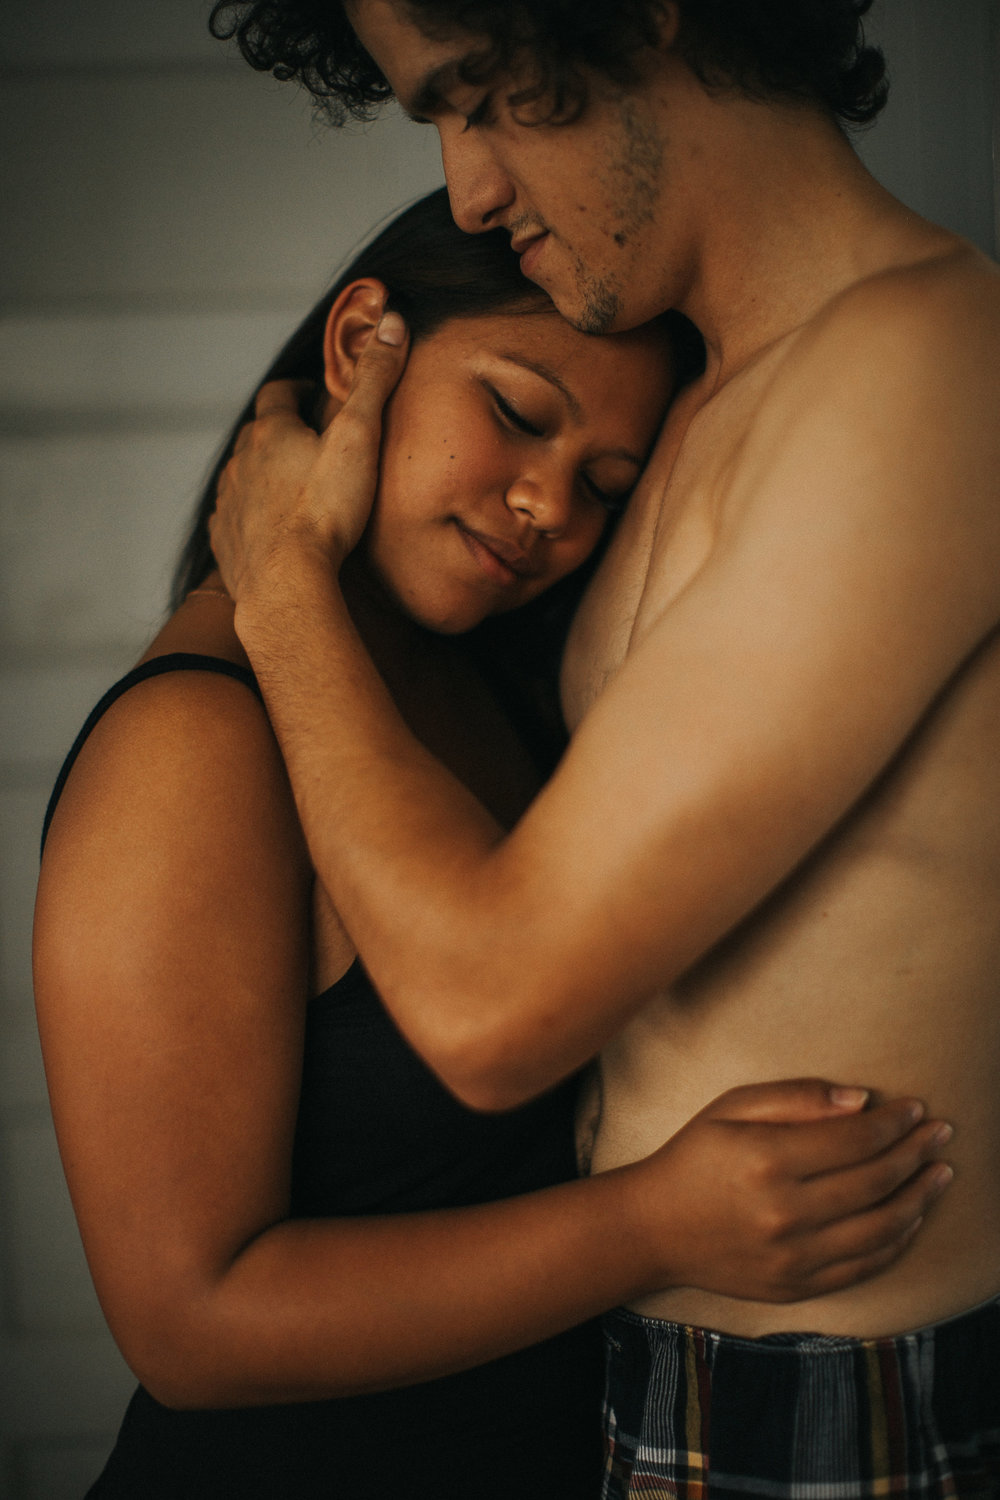 Couples in home photography